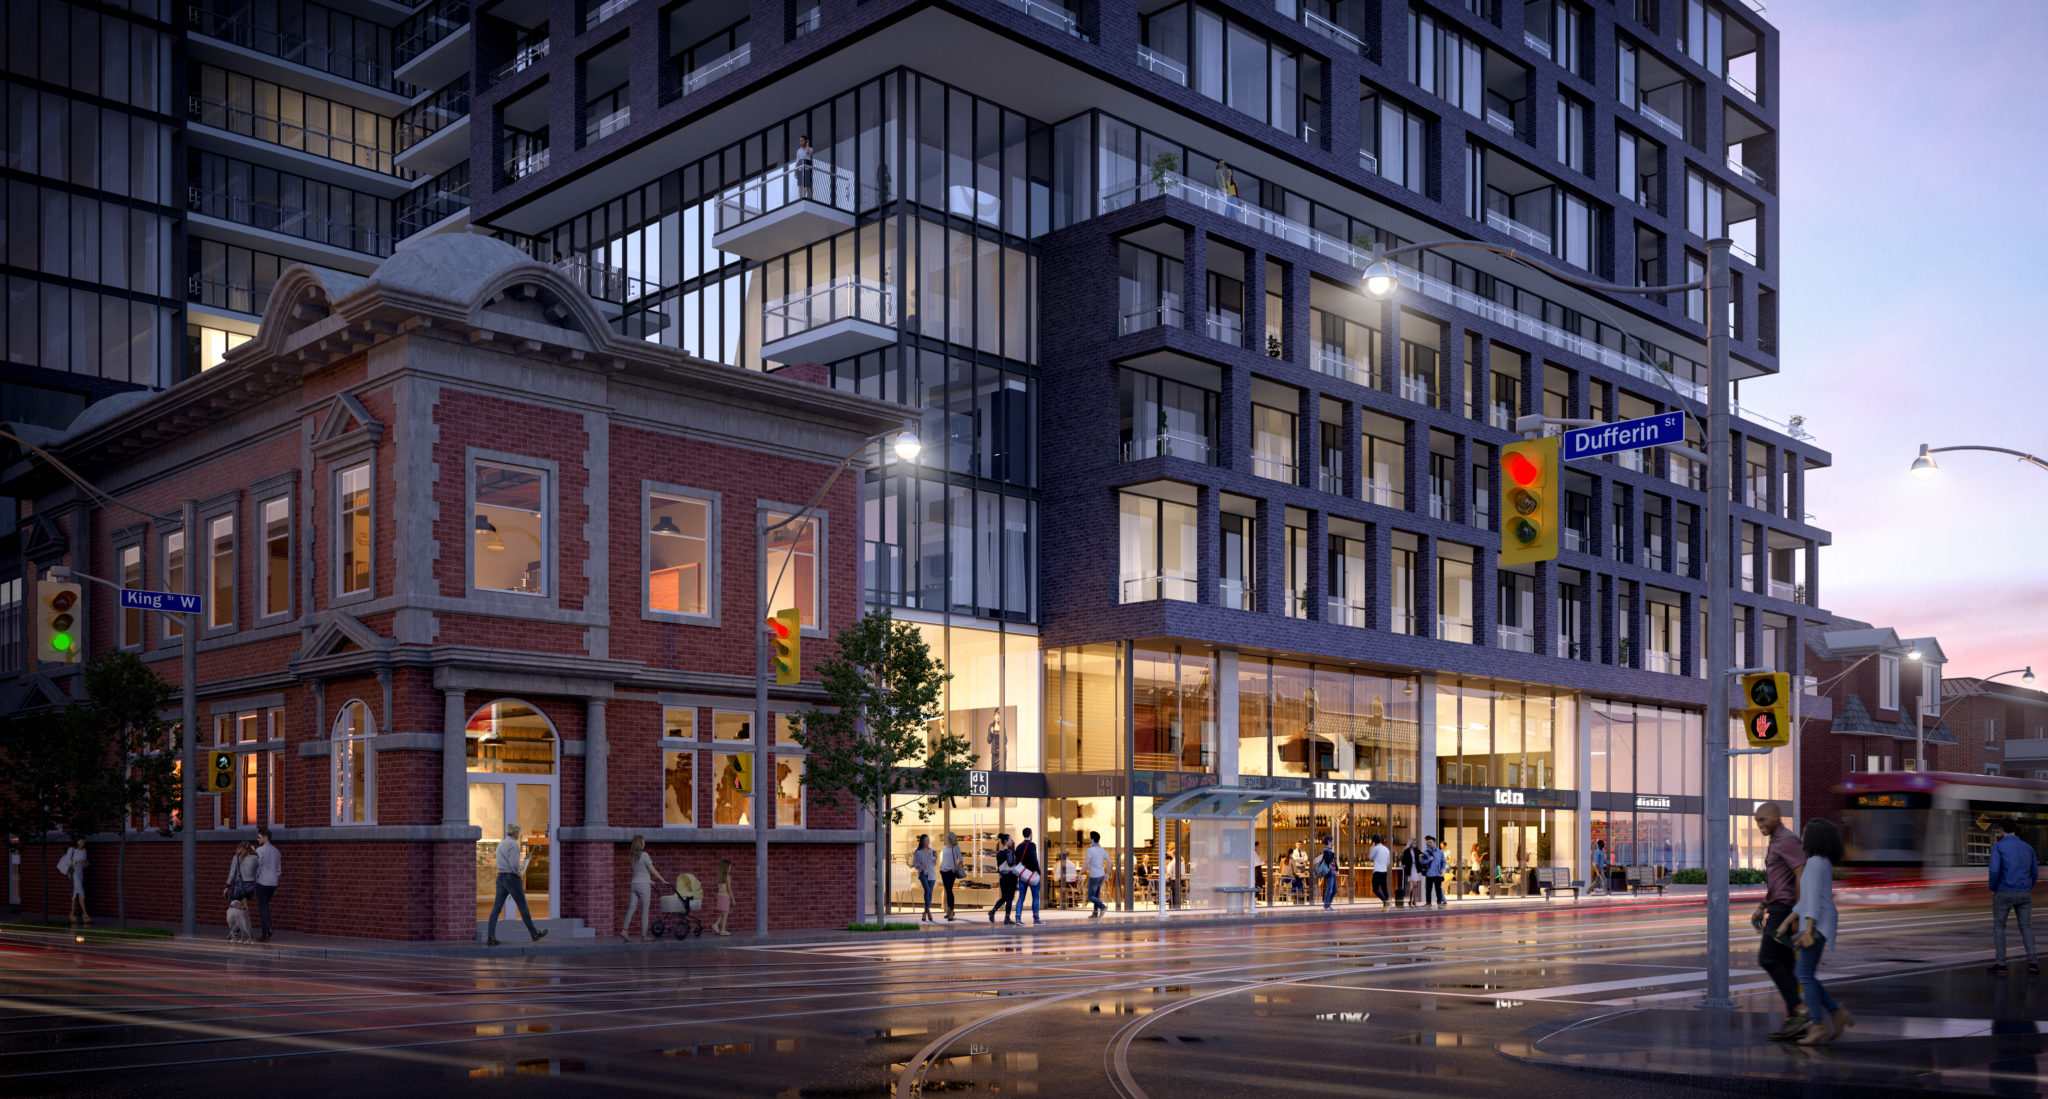 Another 3D image of XO Condos showing its location on King St W and Dufferin.